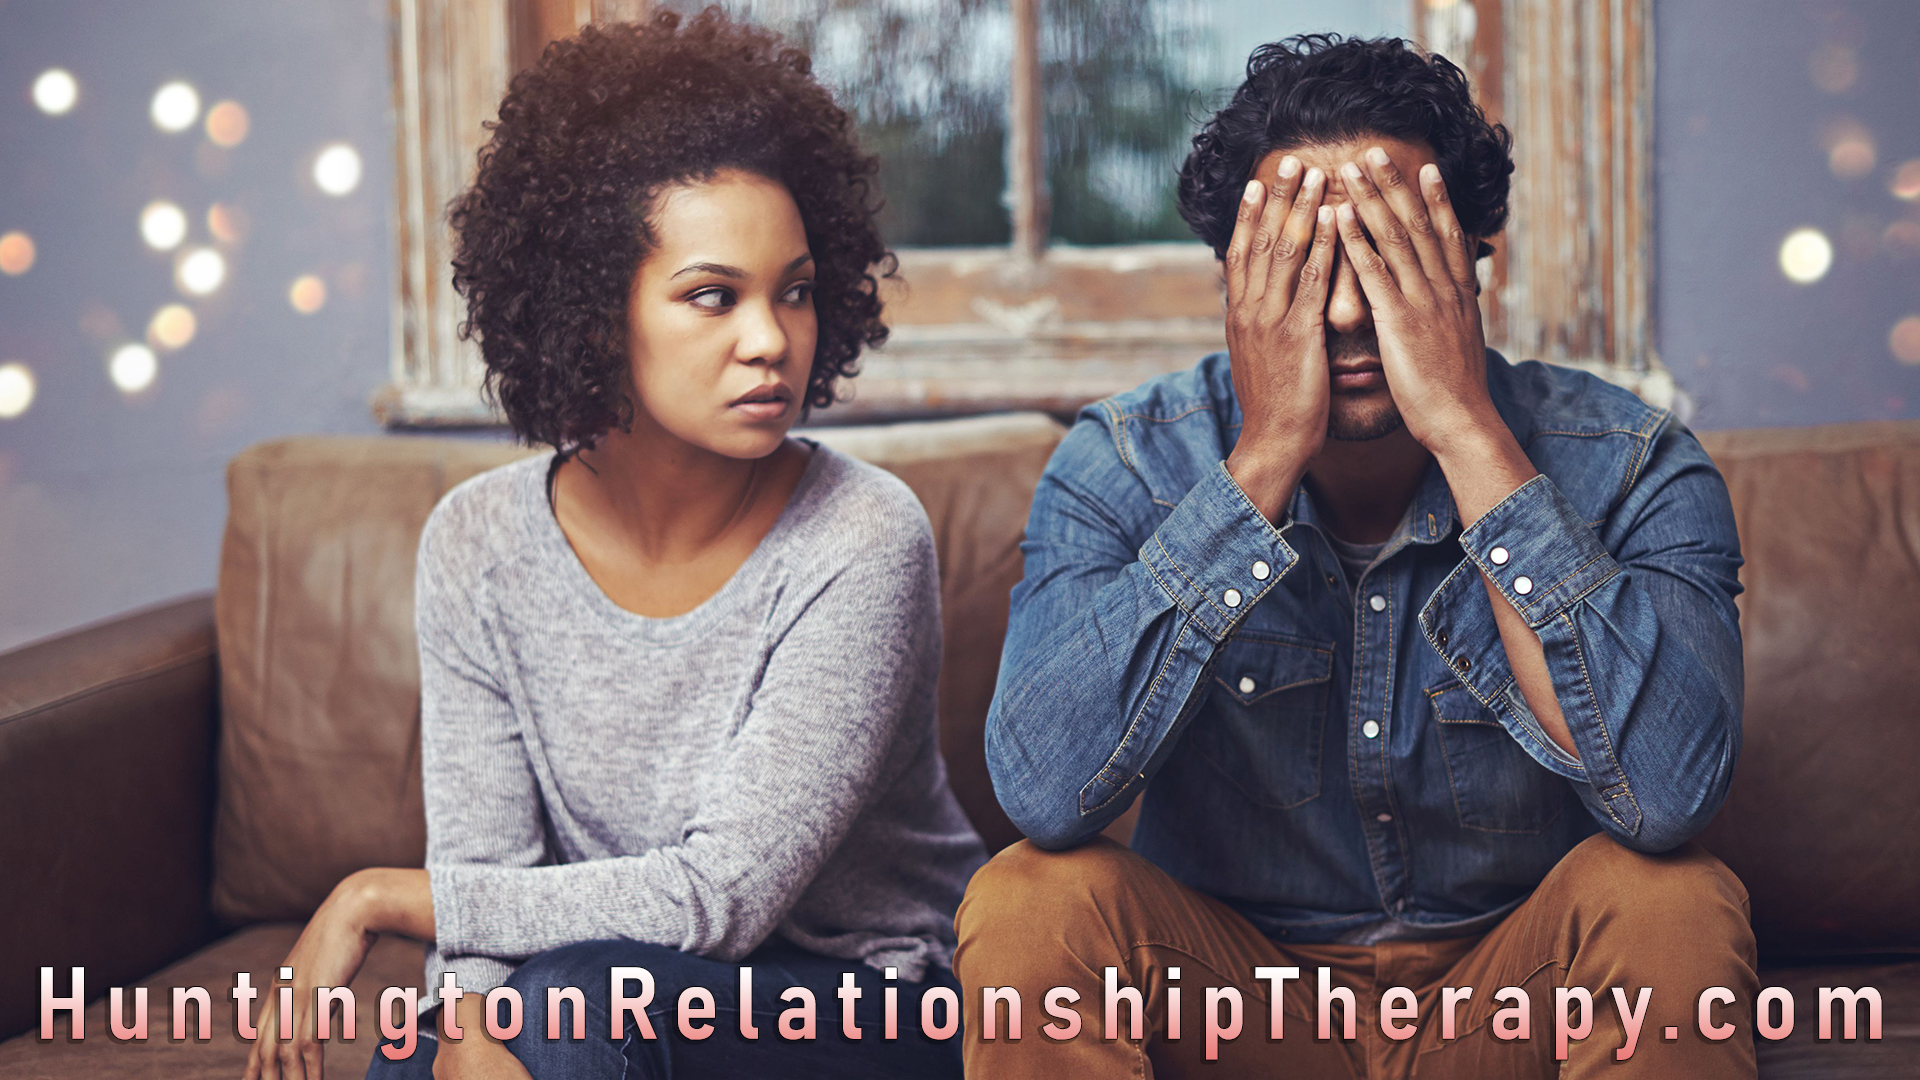 long term relationship foundation issues - marriage therapist Long Island